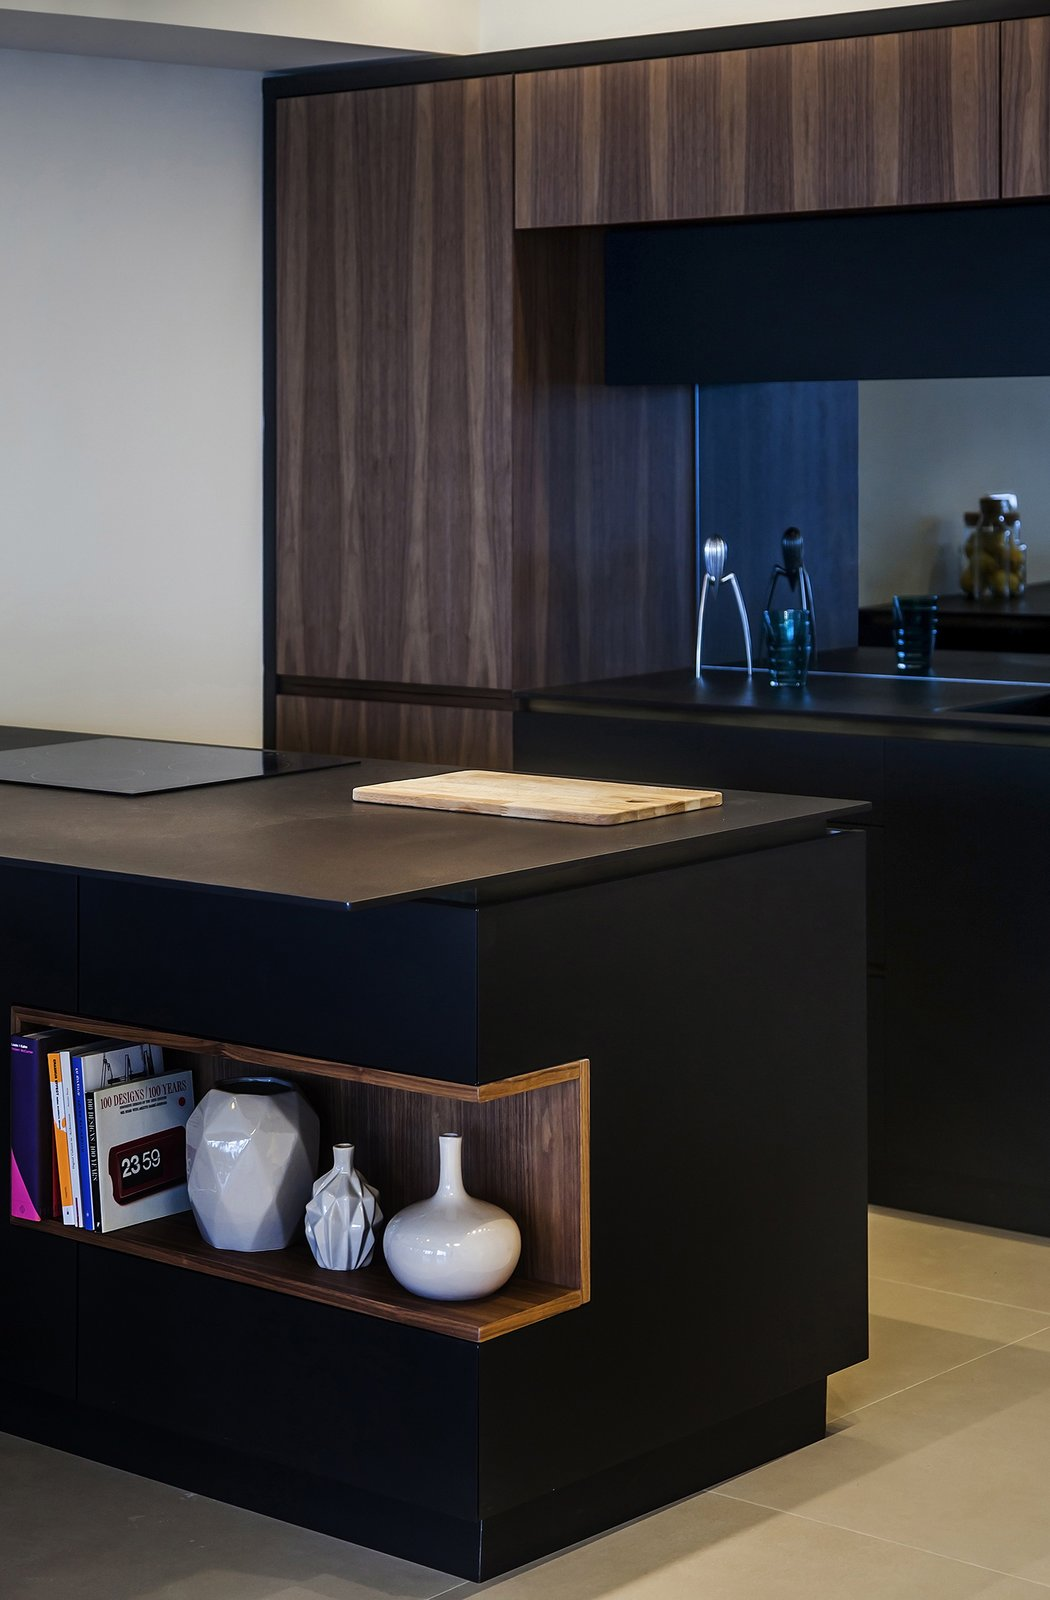 Kitchen, Wood Cabinet, and Wood Counter The custom island also features a cut-out shelf.  A Compact, Renovated Apartment in a Tel Aviv Tower by Allie Weiss